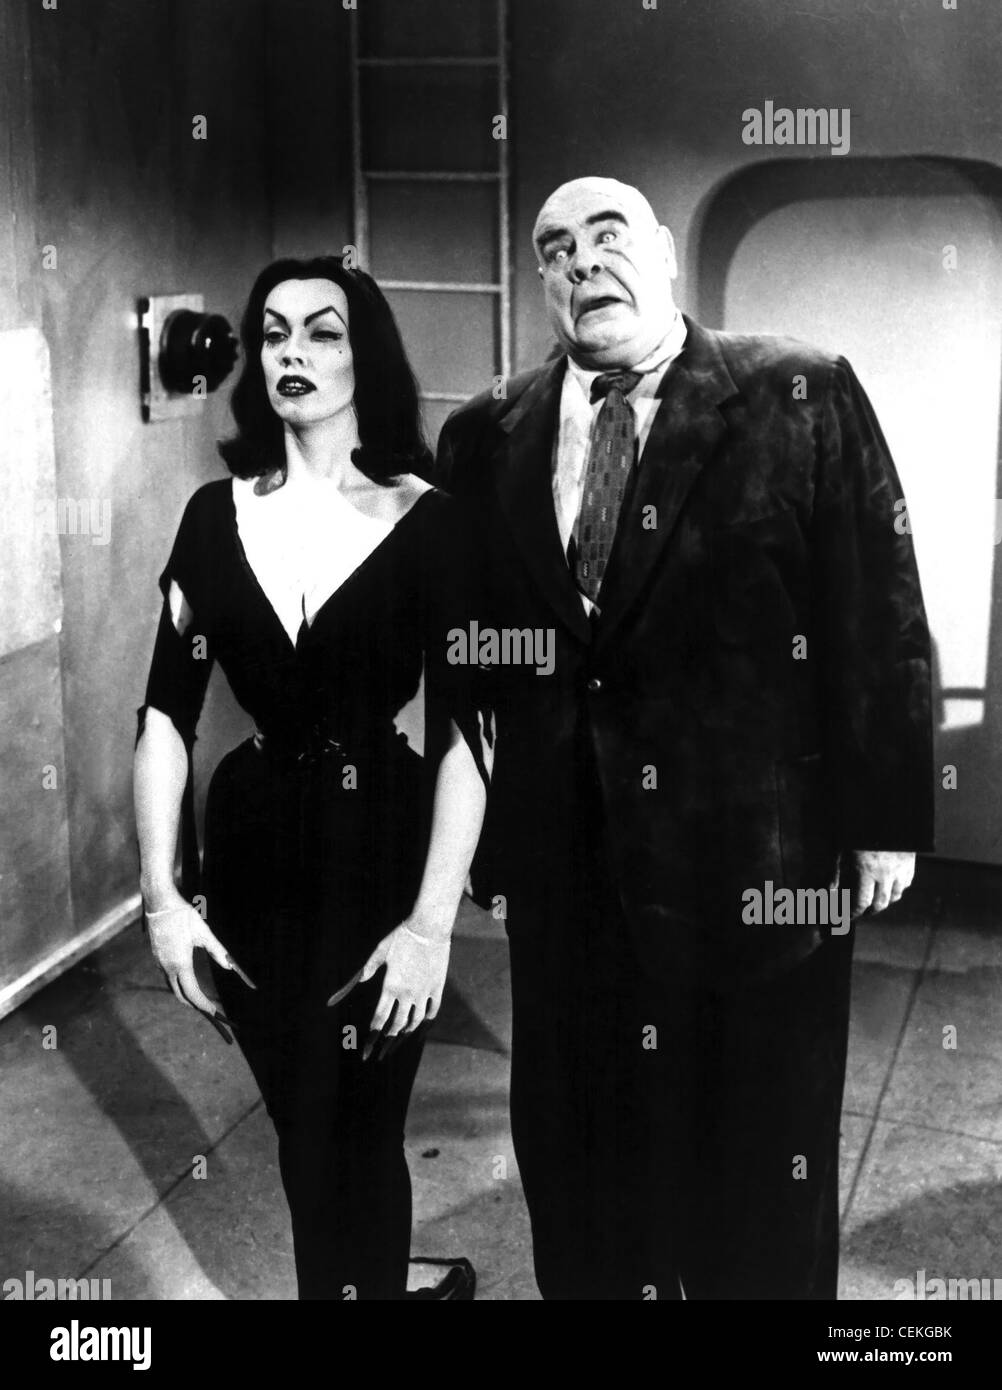 PLAN 9 FROM OUTER SPACE (1959) VAMPIRA TOR JOHNSON EDWARD D. WOOD JR. (DIR) 009 MOVIESTORE COLLECTION LTD - Stock Image